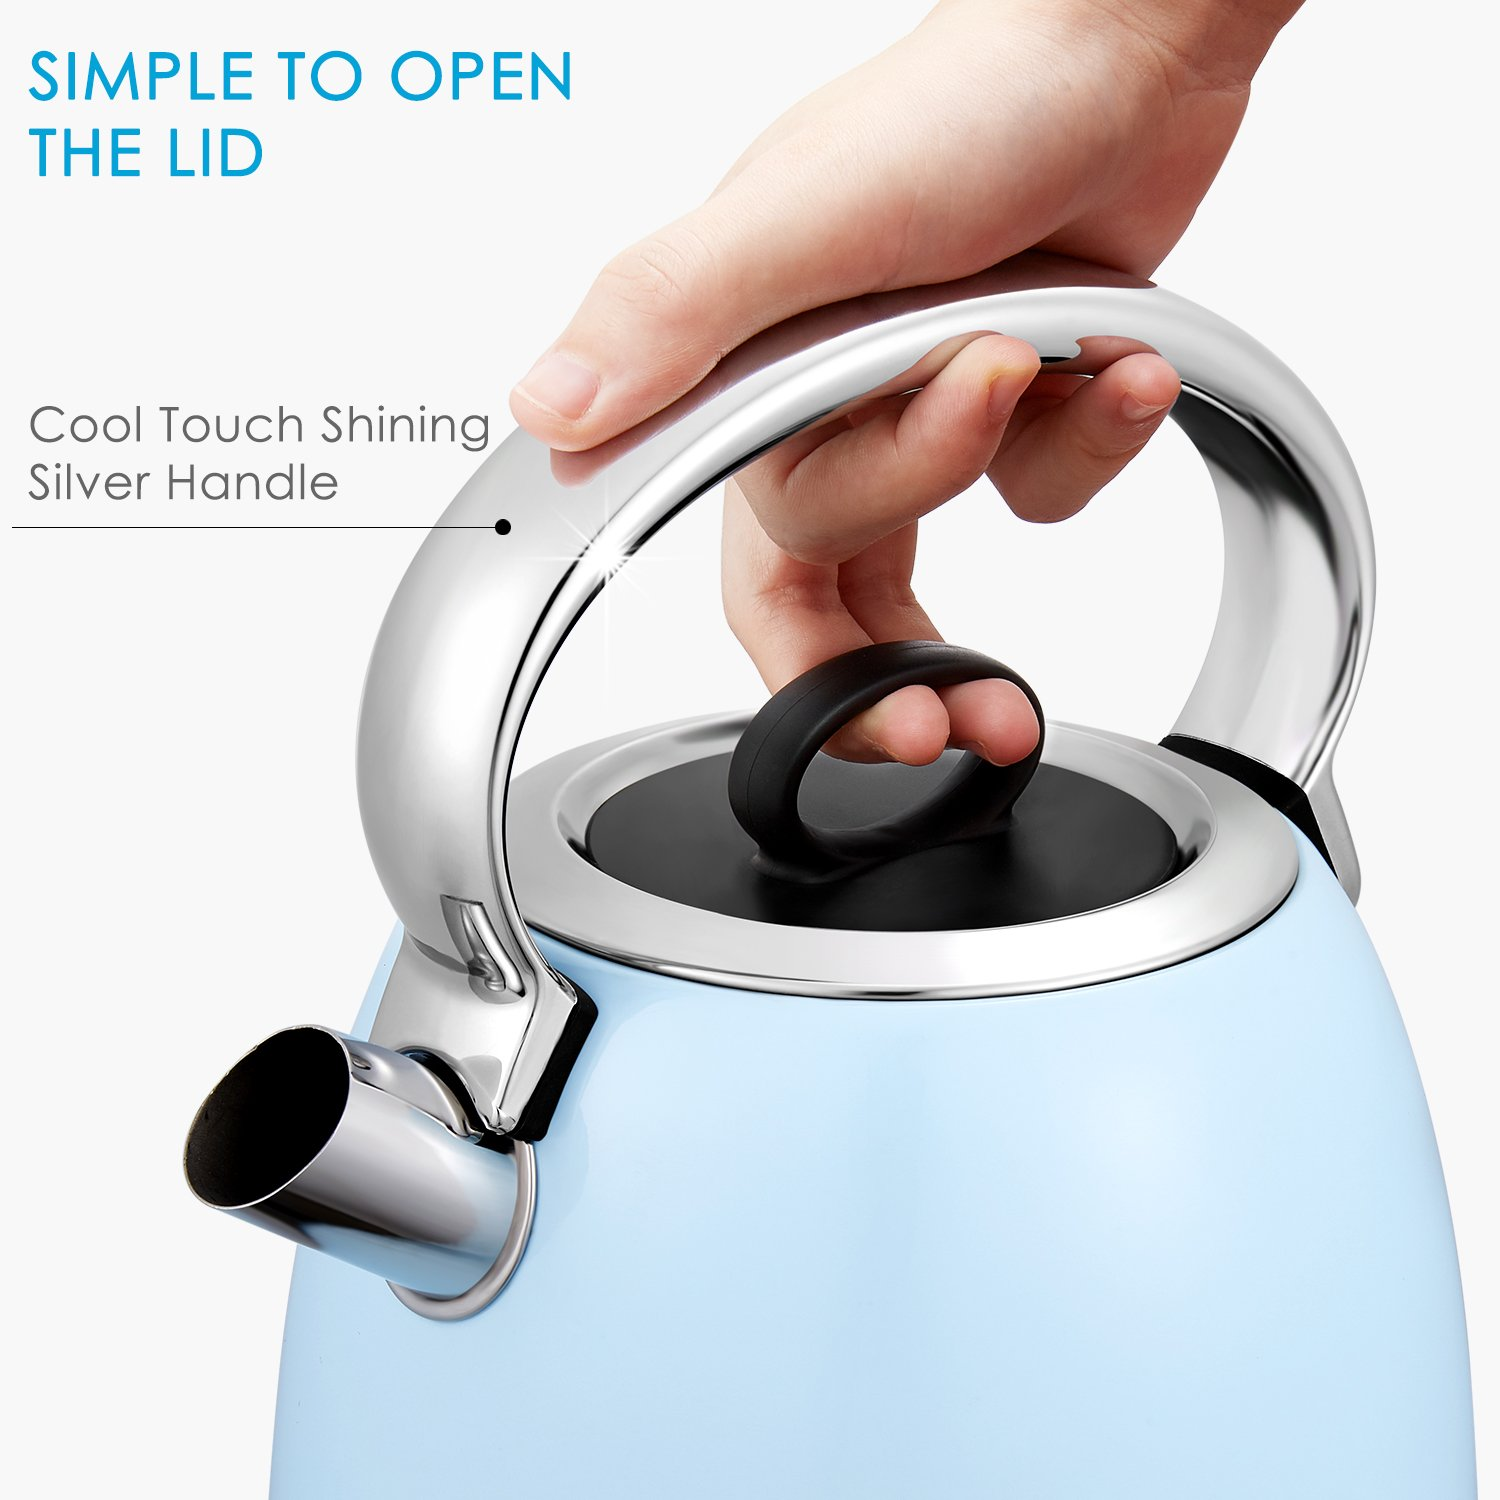 Electric Kettle, Aicok 3000W Fast Boil Tea Kettle, 1.7L Retro Dome Jug Kettle with Auto Off and Boil Dry Protection, 304 Stainless Steel Water Boiler with Anti-Fading PowderBlue Coating